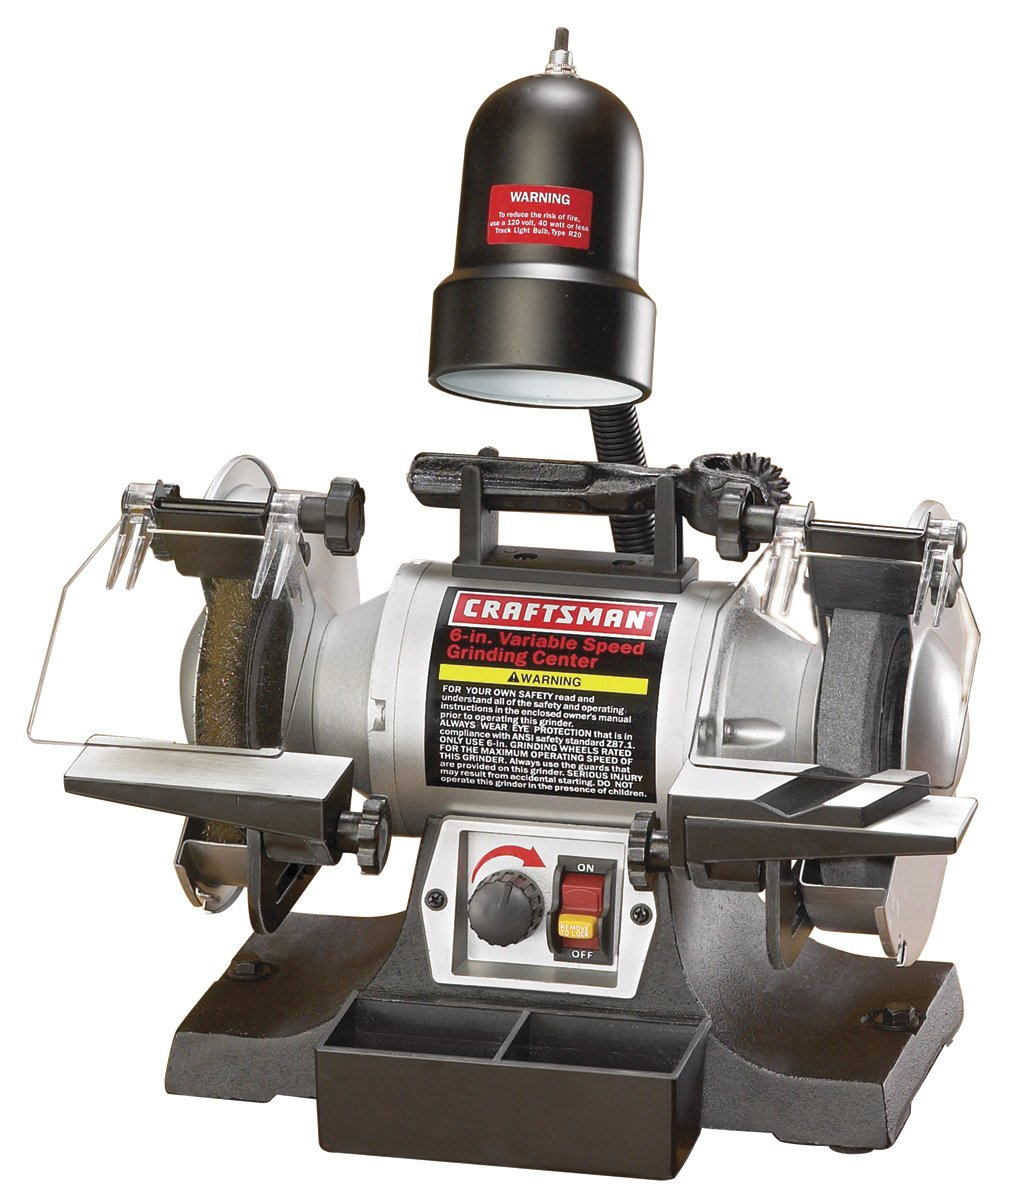 The Best Bench Grinder 2